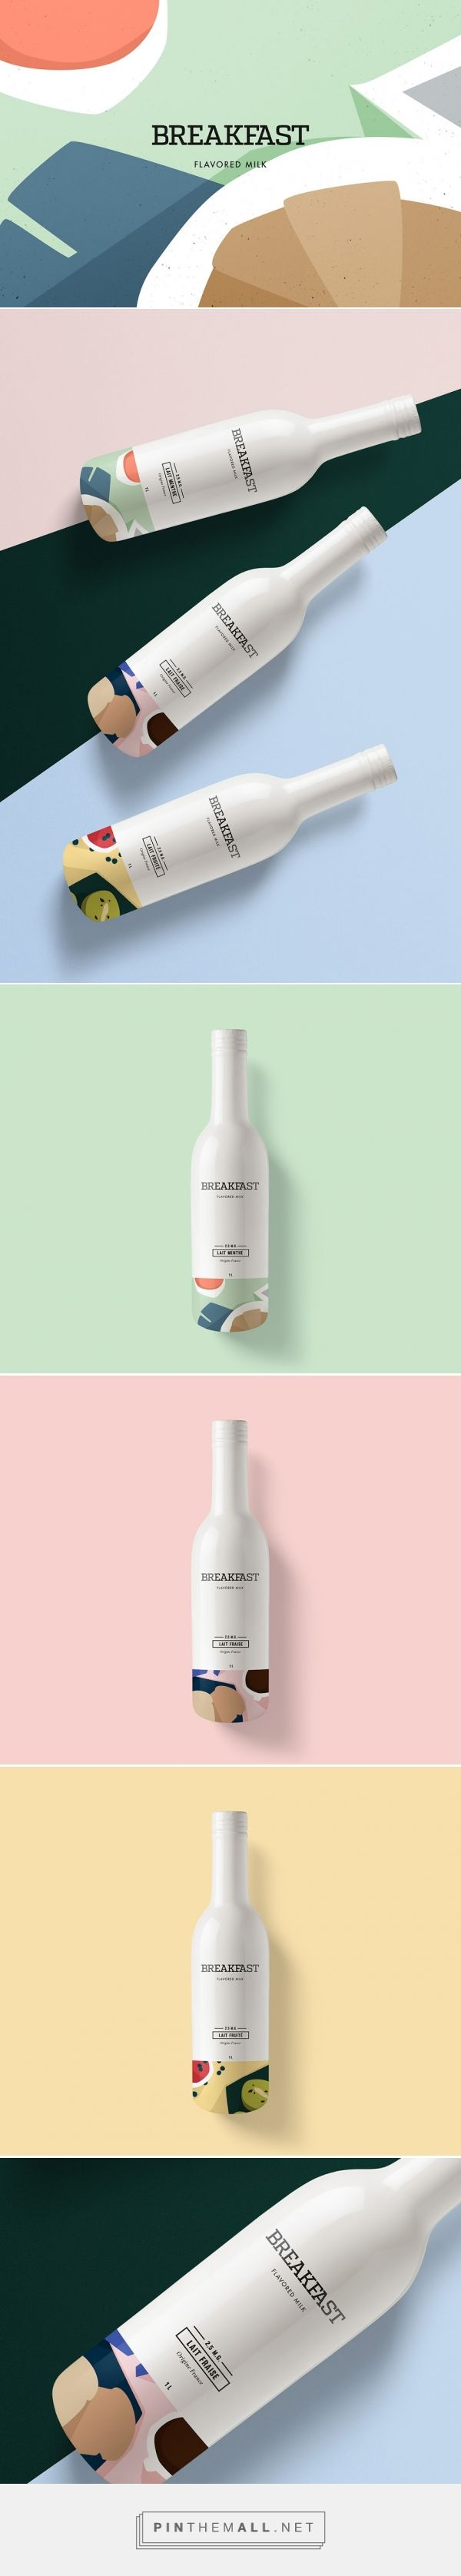 Breakfast Milk concept designed by Kali Day (France) - http://www.packagingoftheworld.com/2016/03/breakfast-flavored-milk-concept.html